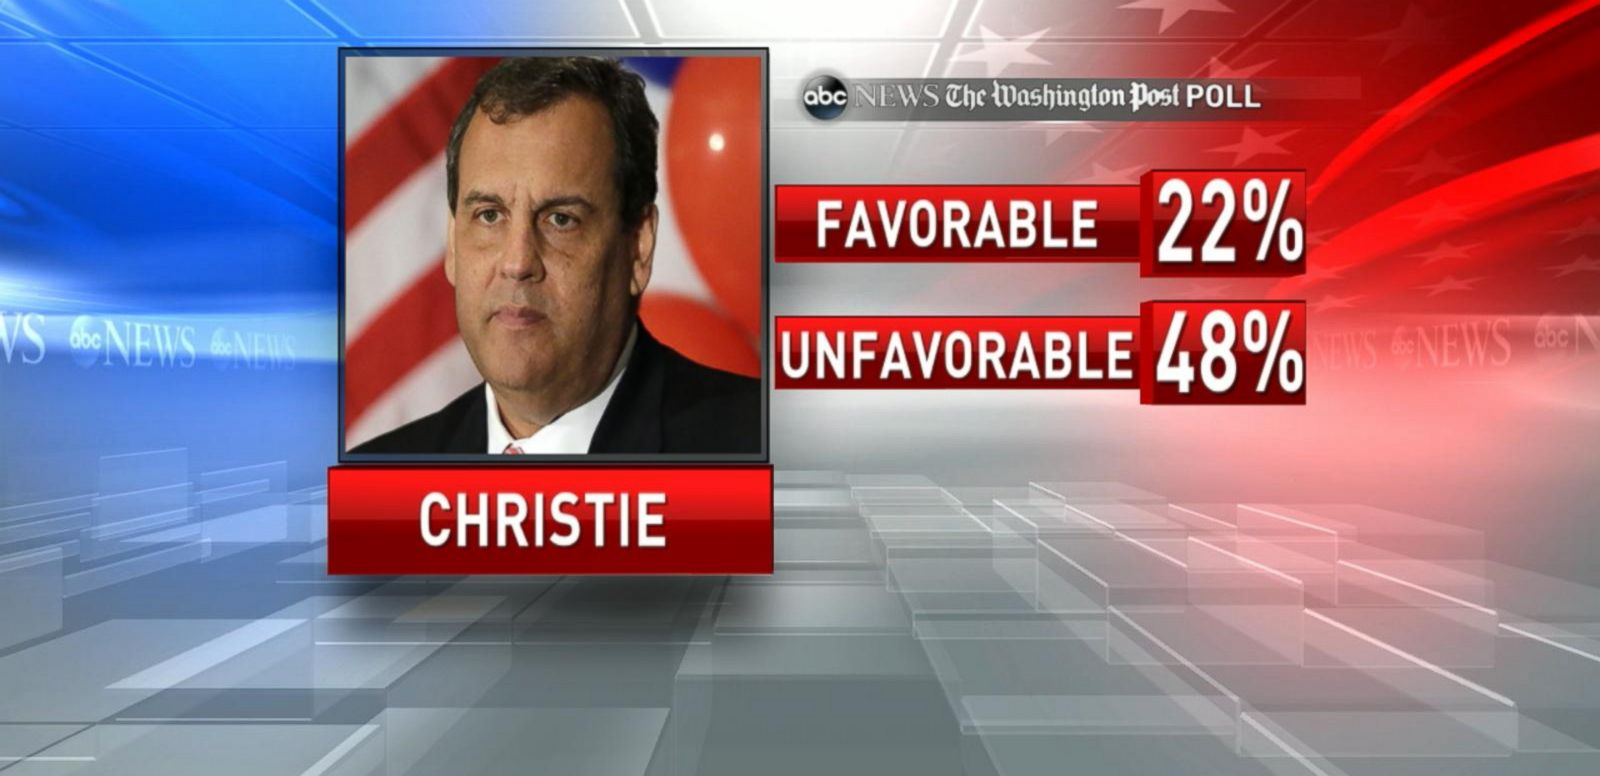 VIDEO: NJ Governor Chris Christie Prepares 2016 Campaign Announcement